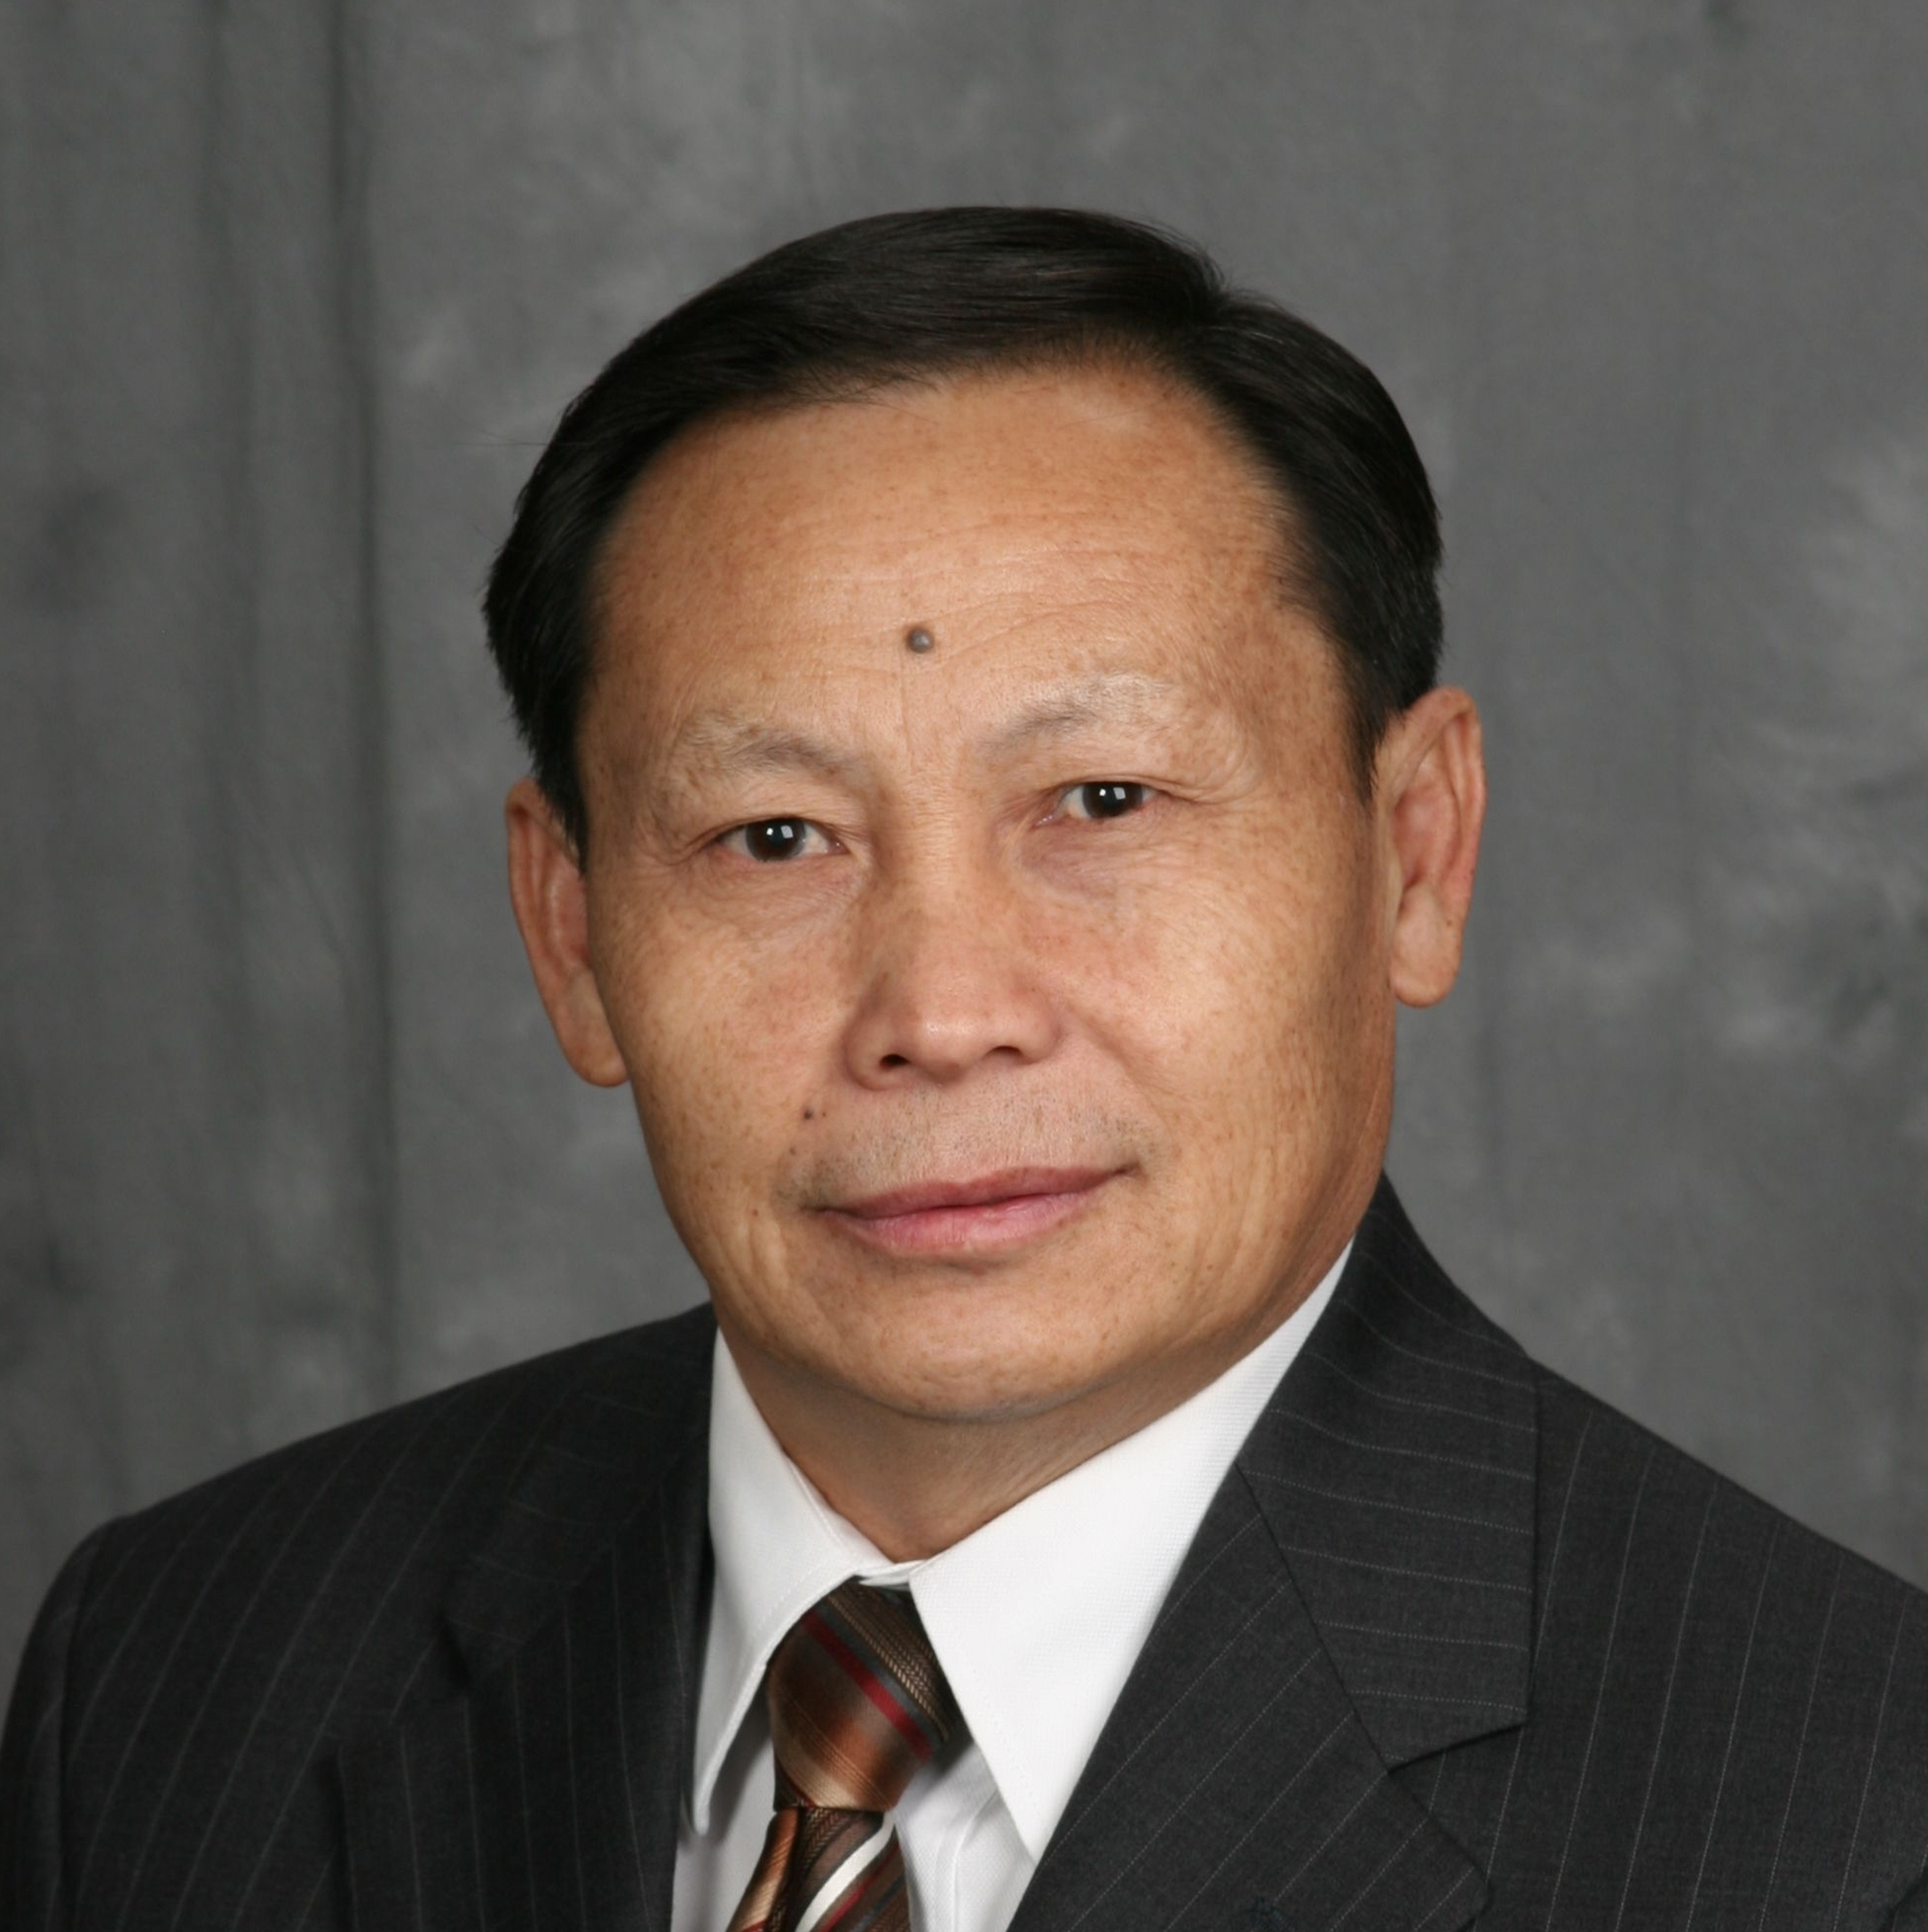 Rev. Tong Z. Vang - Church Planting Consultanttoojzoo@gmail.com(651) 231-6569First Hmong Baptist Church Coon Rapids, MNCLICK TO SEE THE PRESENTATION VIDEO